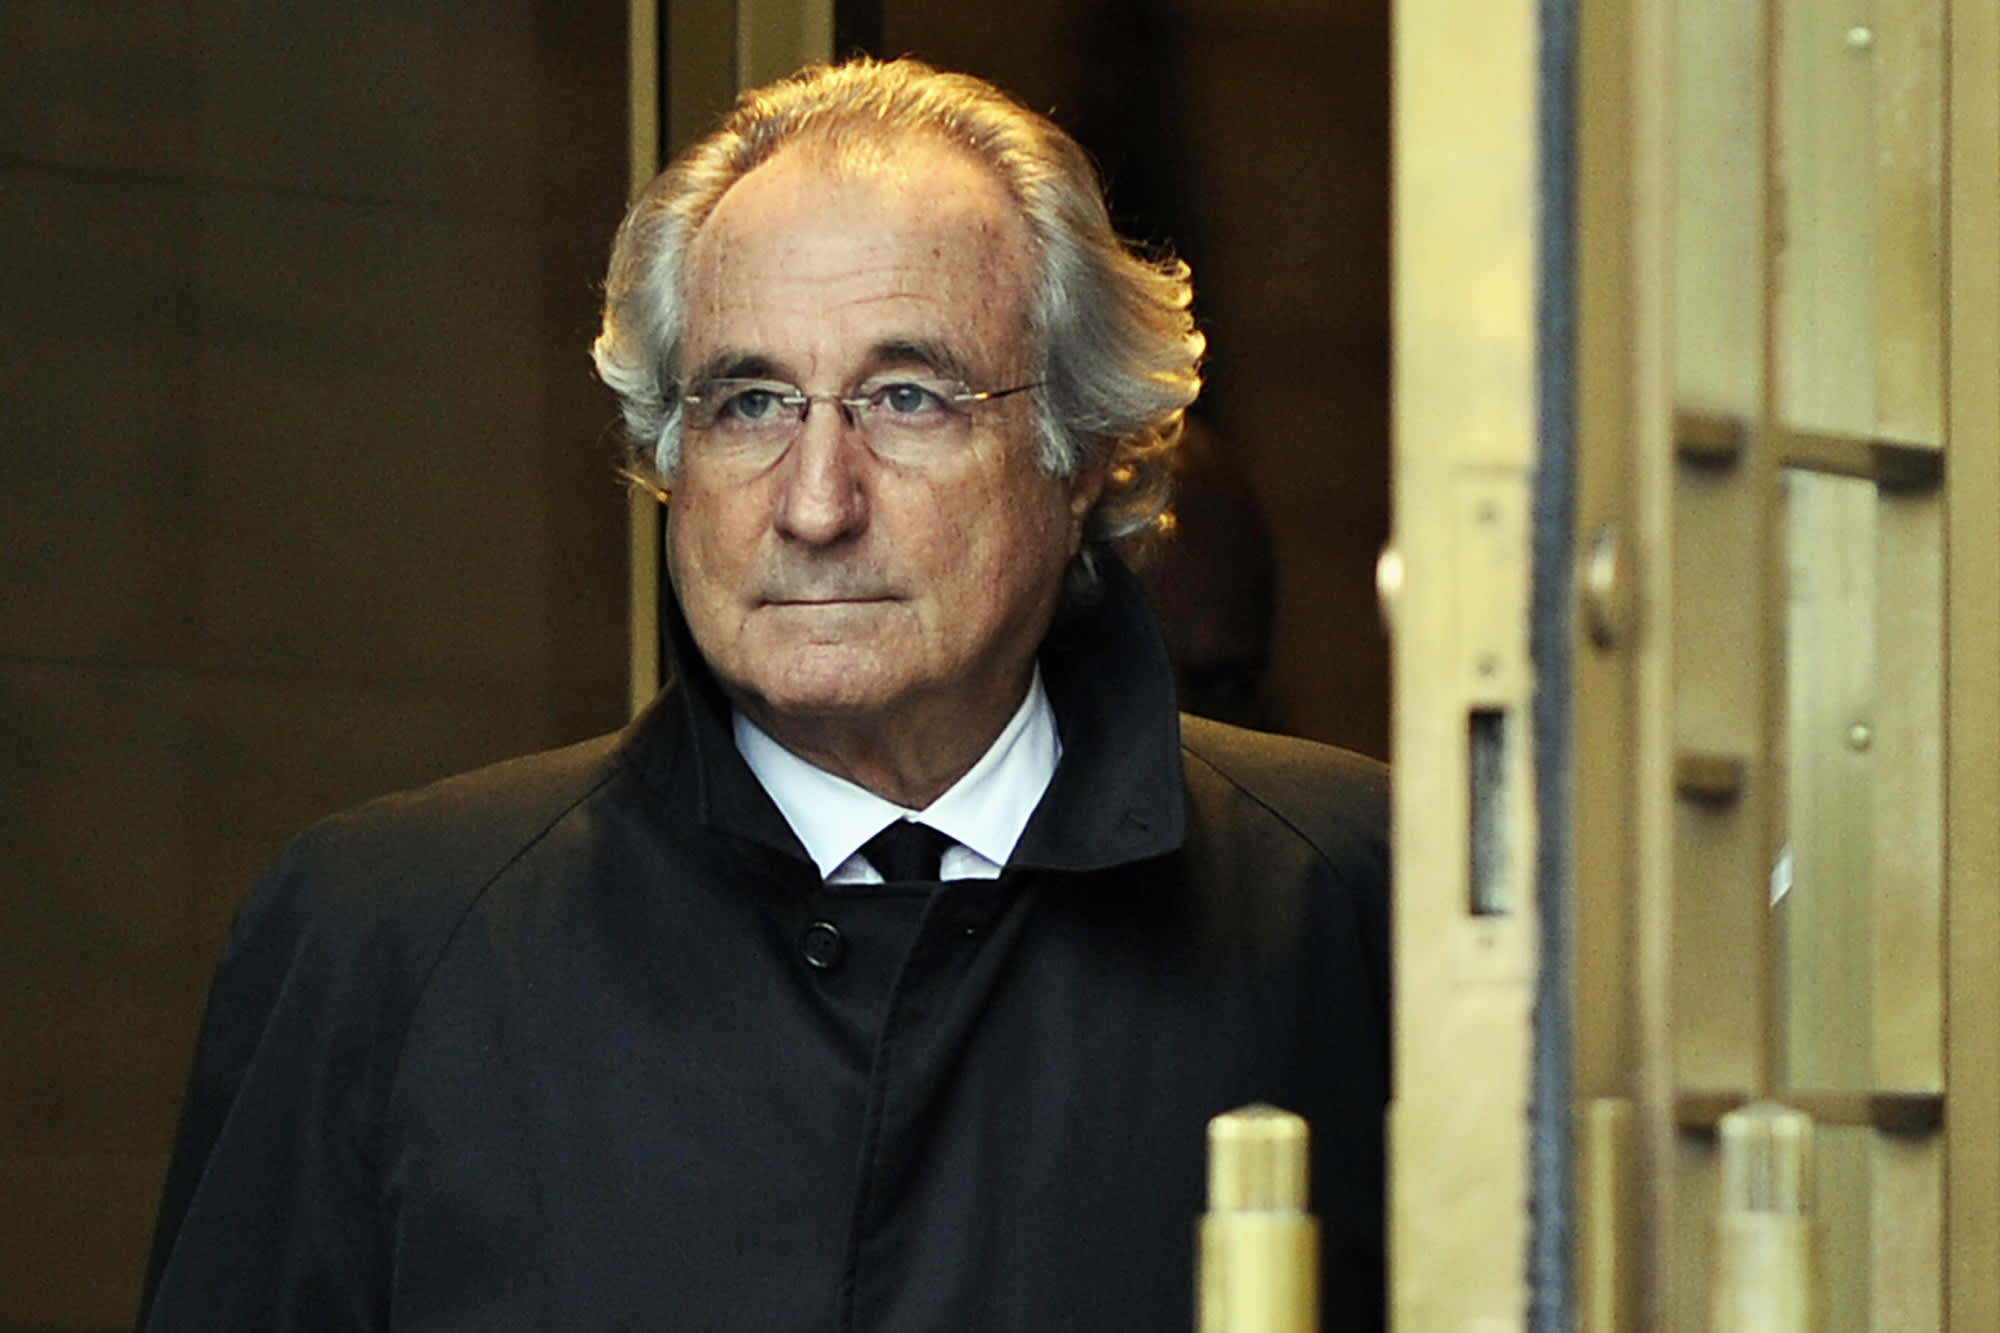 Bernie Madoff's inner circle, 10 years after his arrest